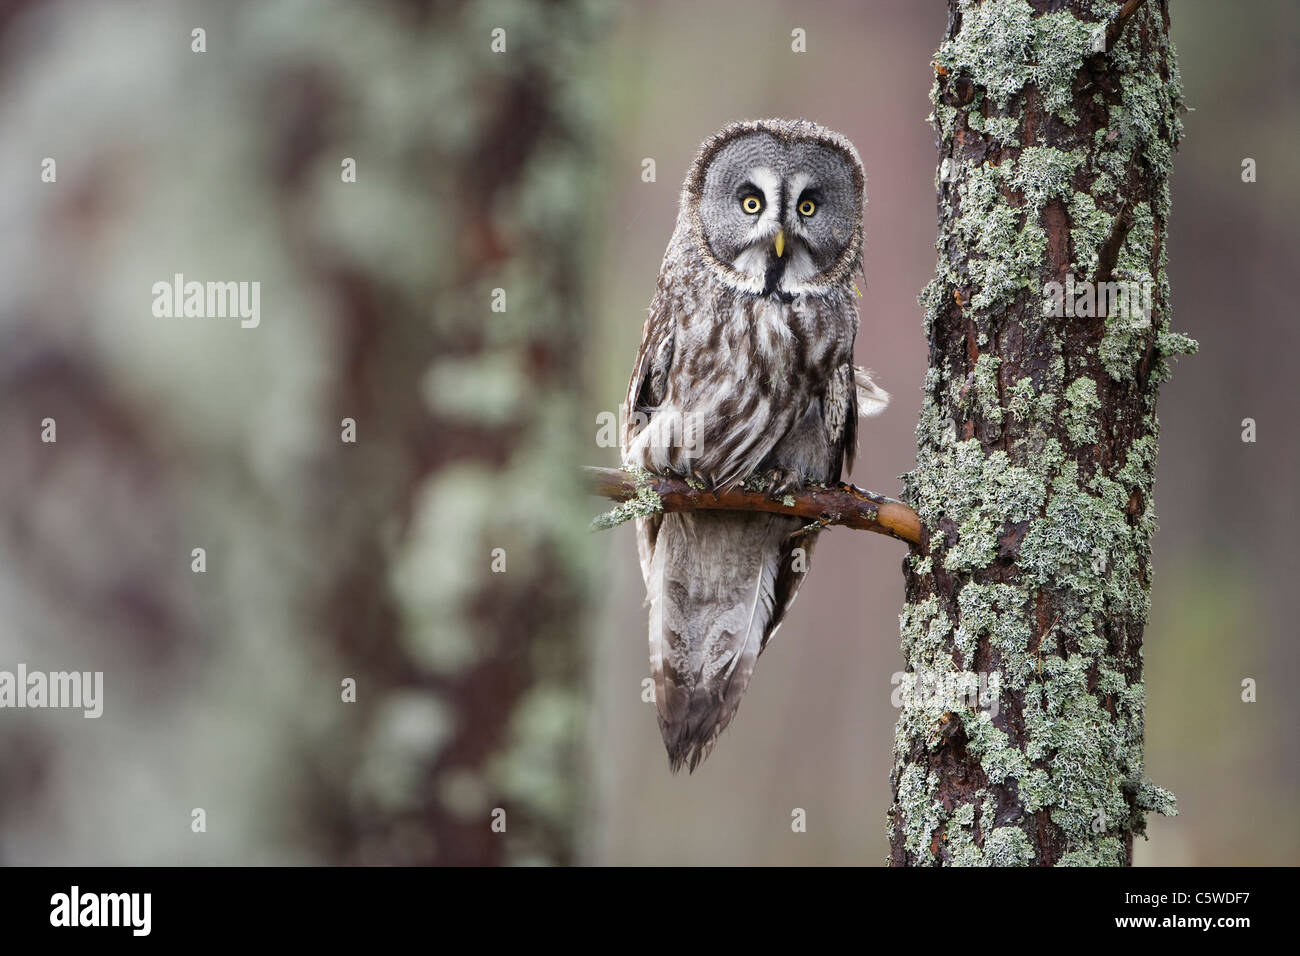 Great Grey Owl, Lapland Owl (Strix nebulosa) perched in pine forest (controlled conditions). - Stock Image